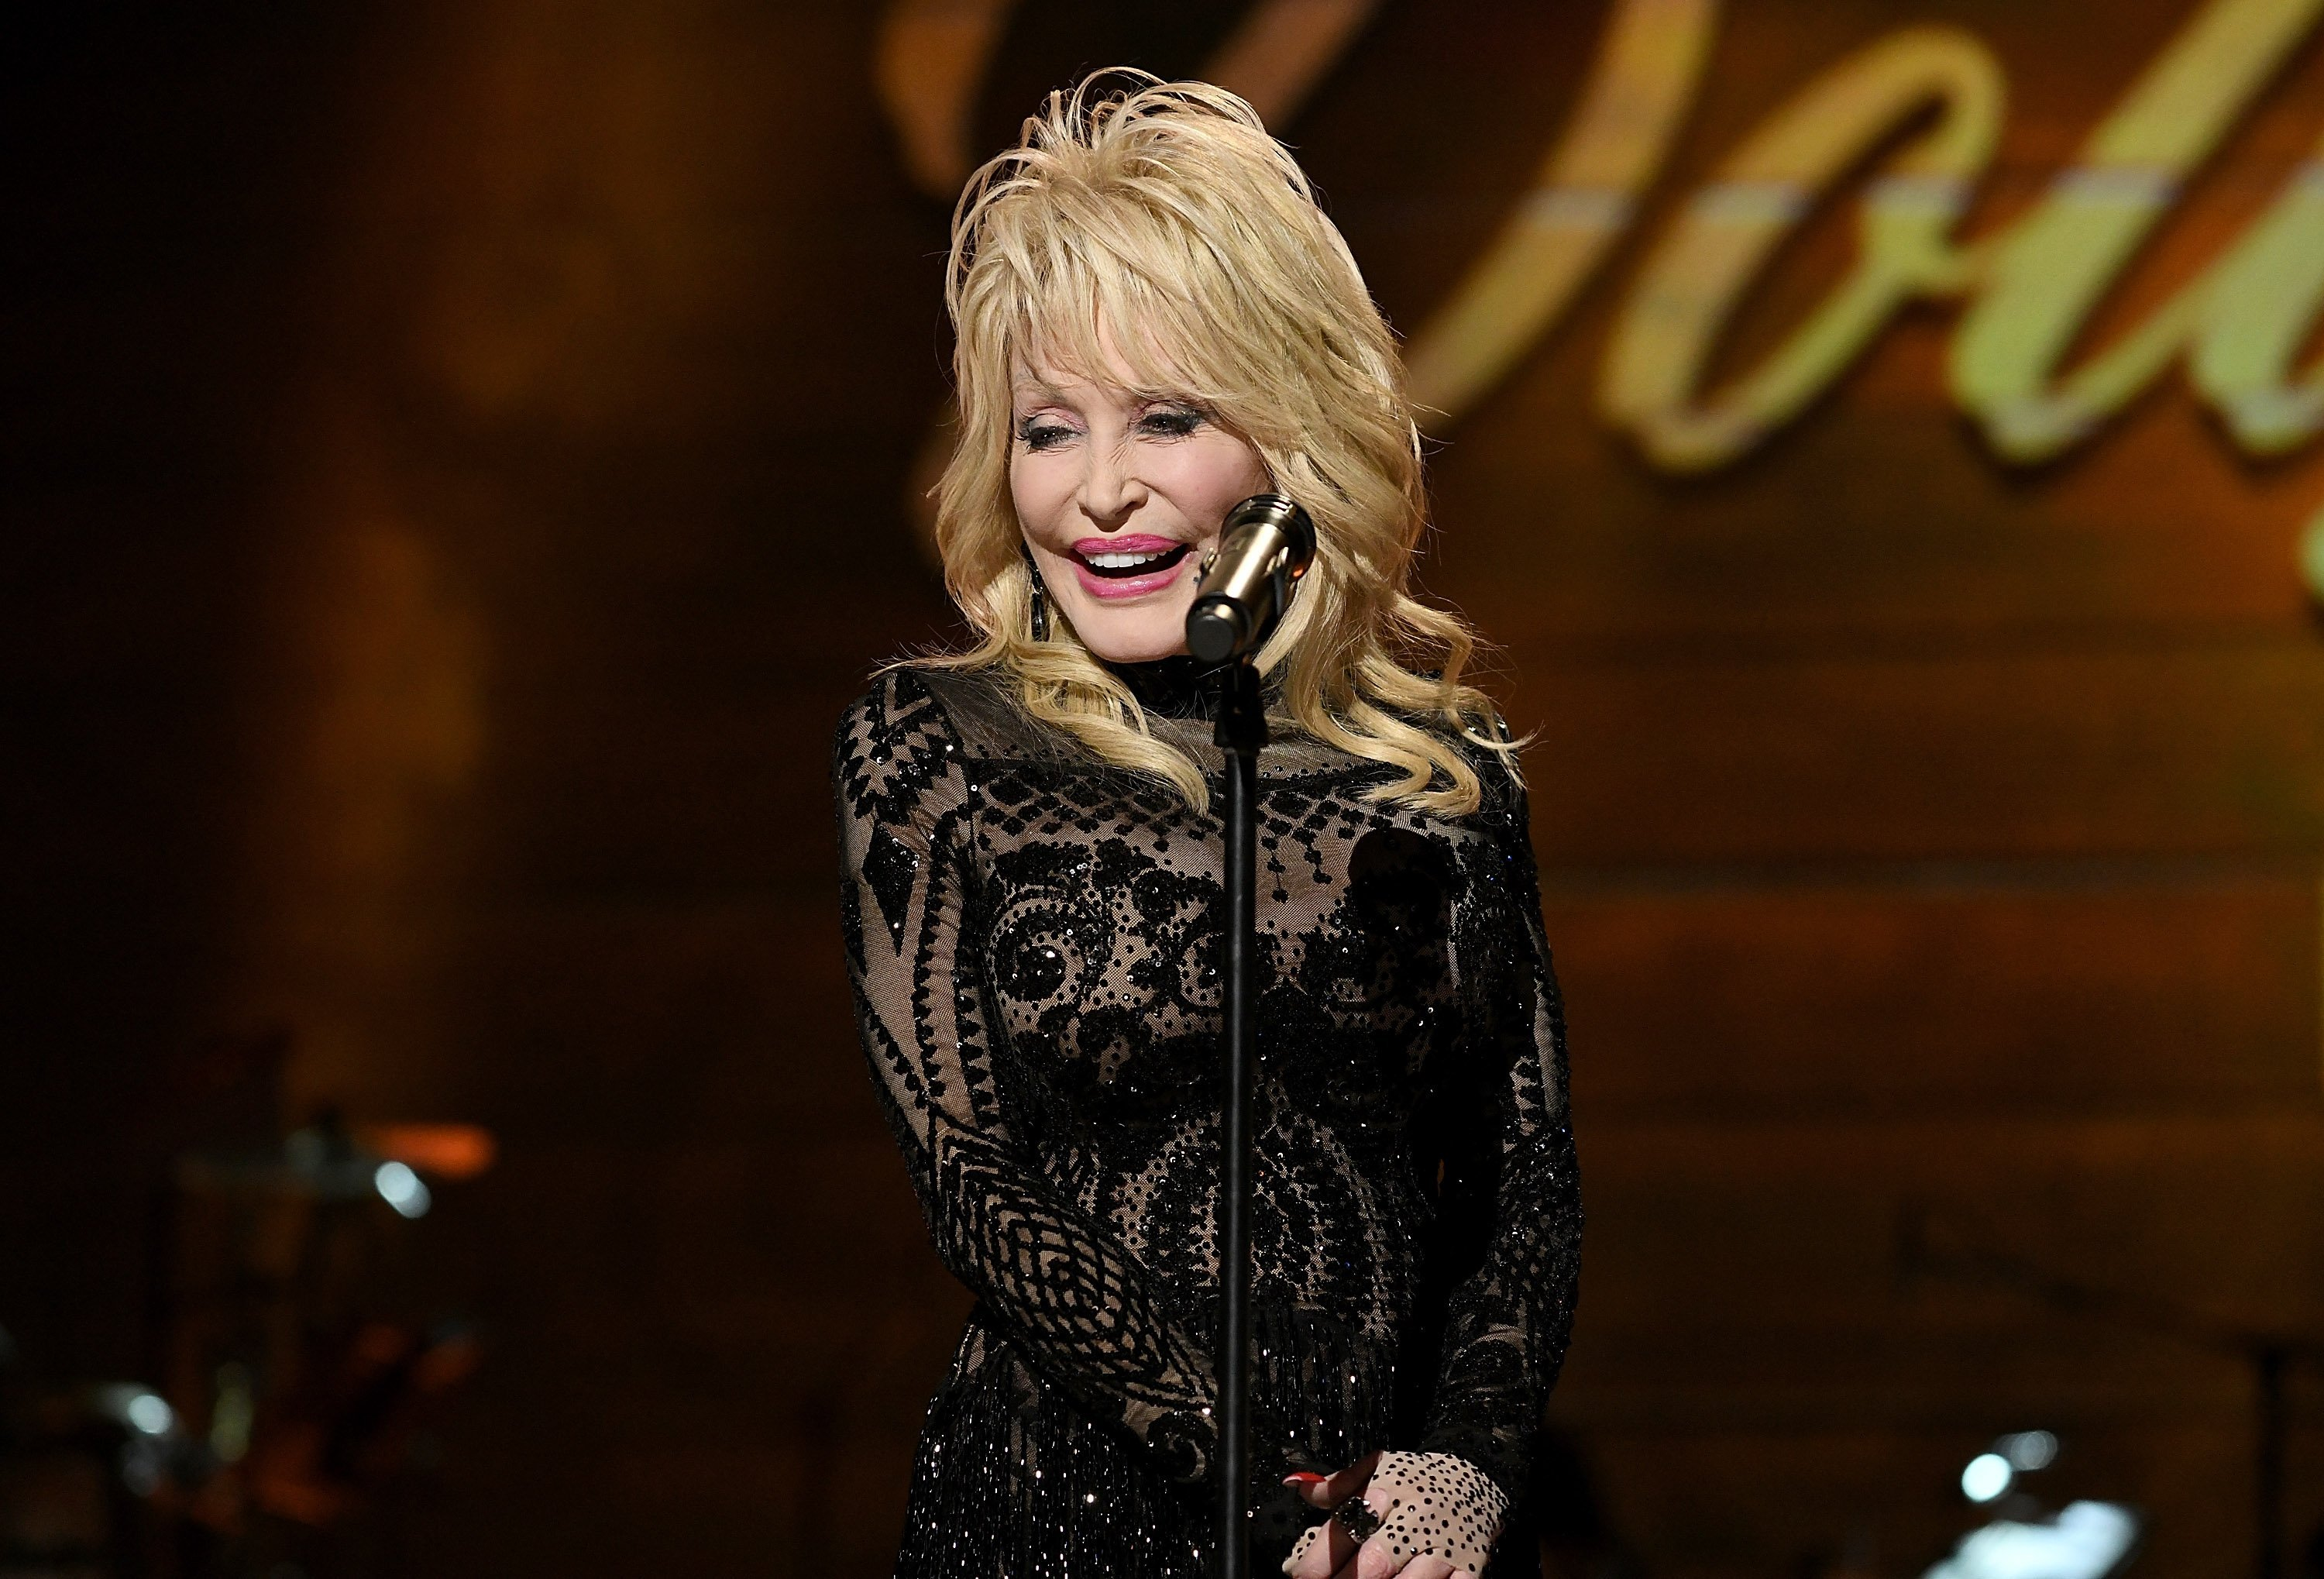 Dolly Parton at the MusiCares Person of the Year honoring Dolly Parton at Los Angeles Convention Center on February 8, 2019. | Photo: GettyImages